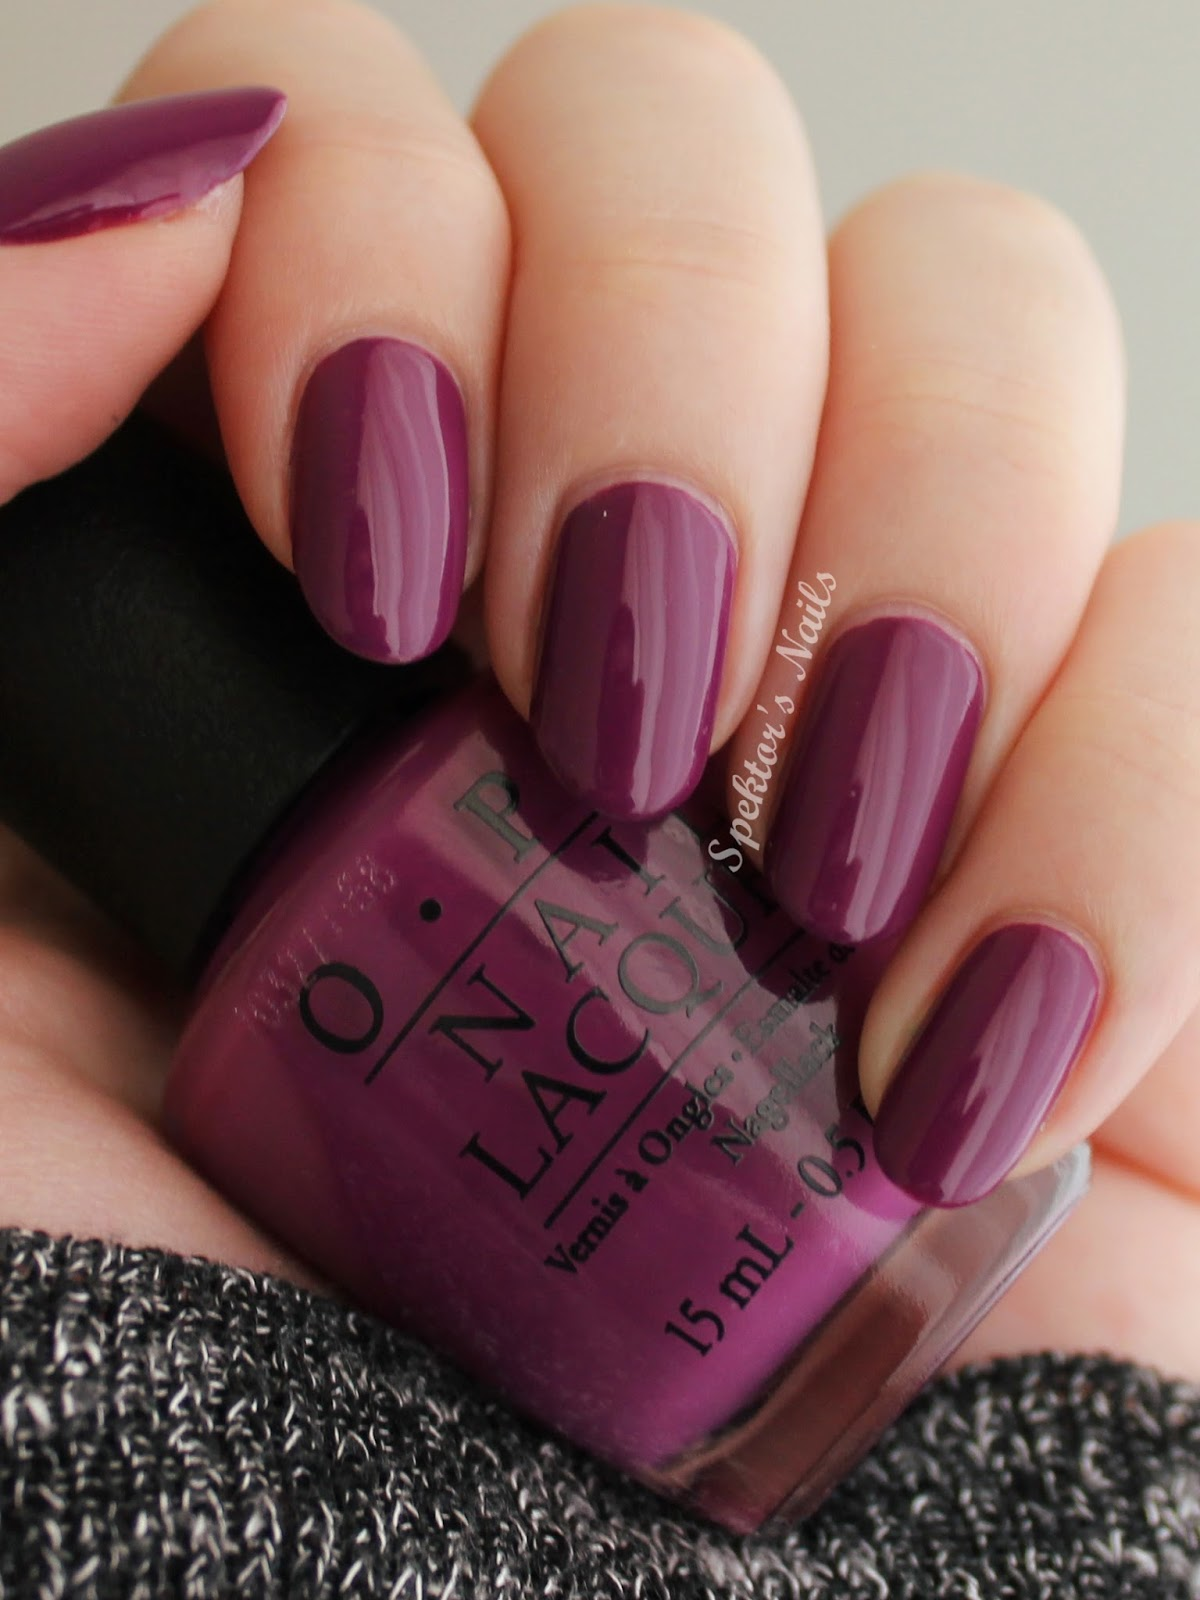 OPI Spring/Summer 2014 - Pamplona Purple